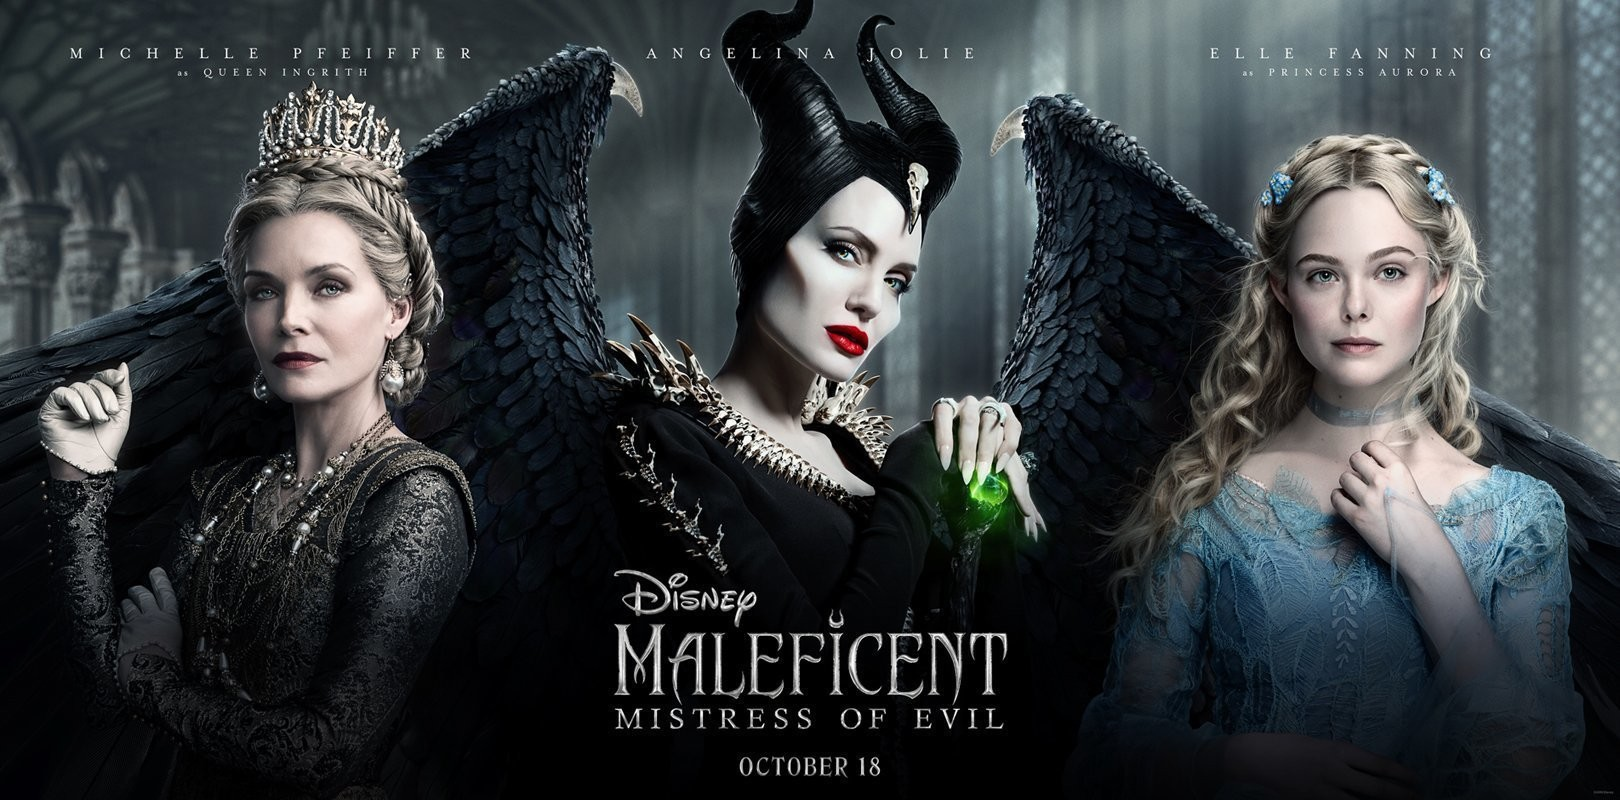 720p Download Maleficent Mistress Of Evil Full Movie Hd 4k Online